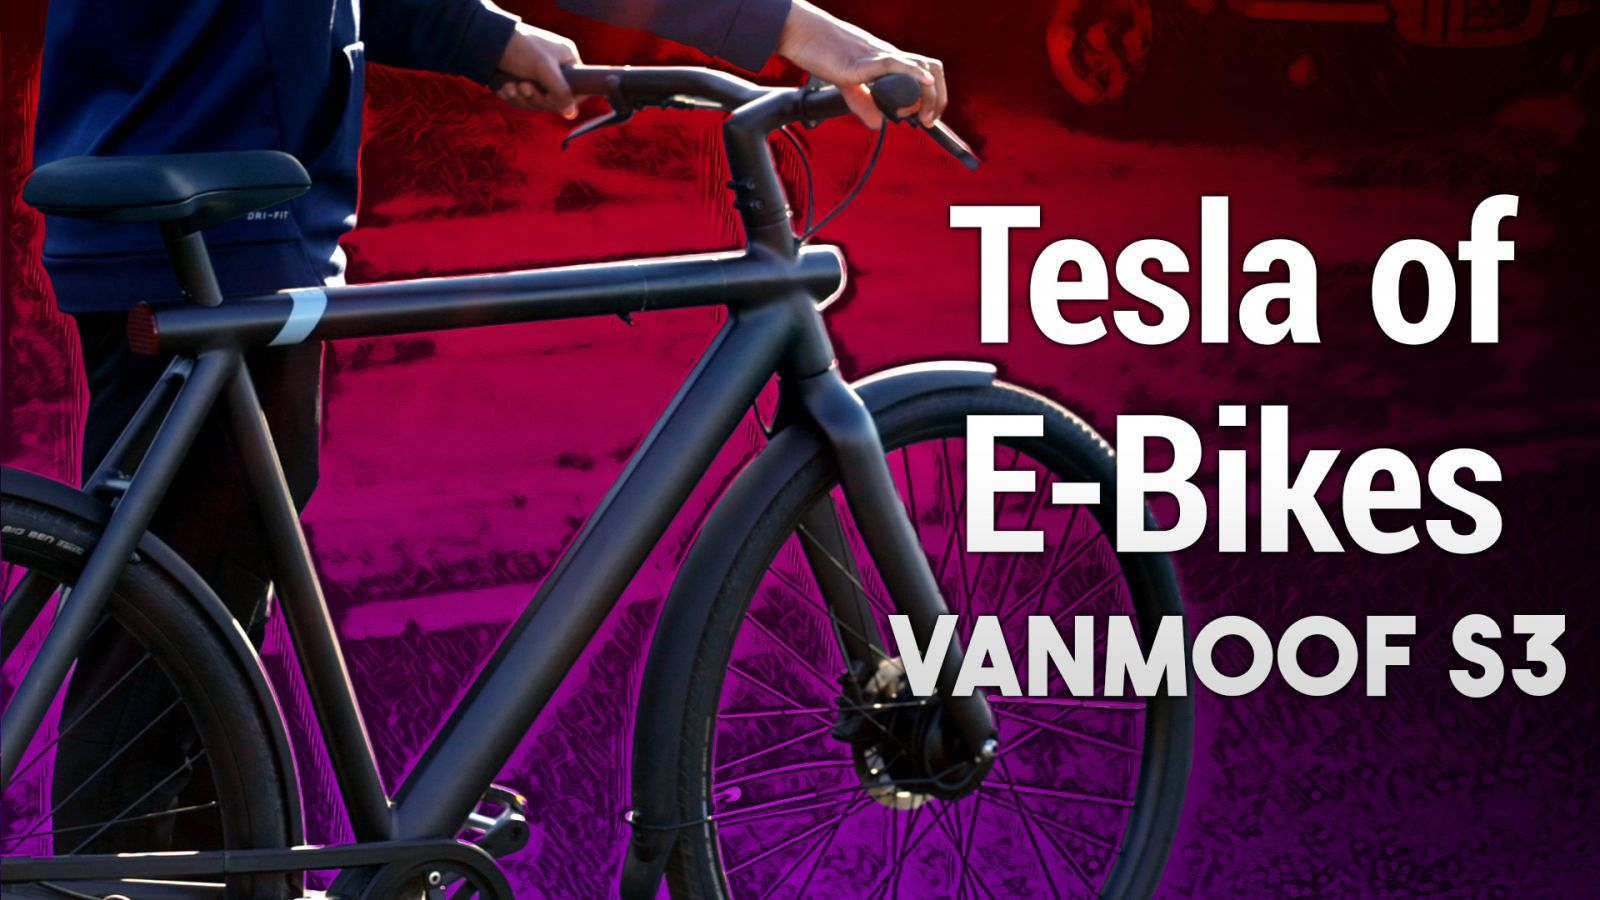 VanMoof S3 Hands-on - The Telsa of E-Bikes